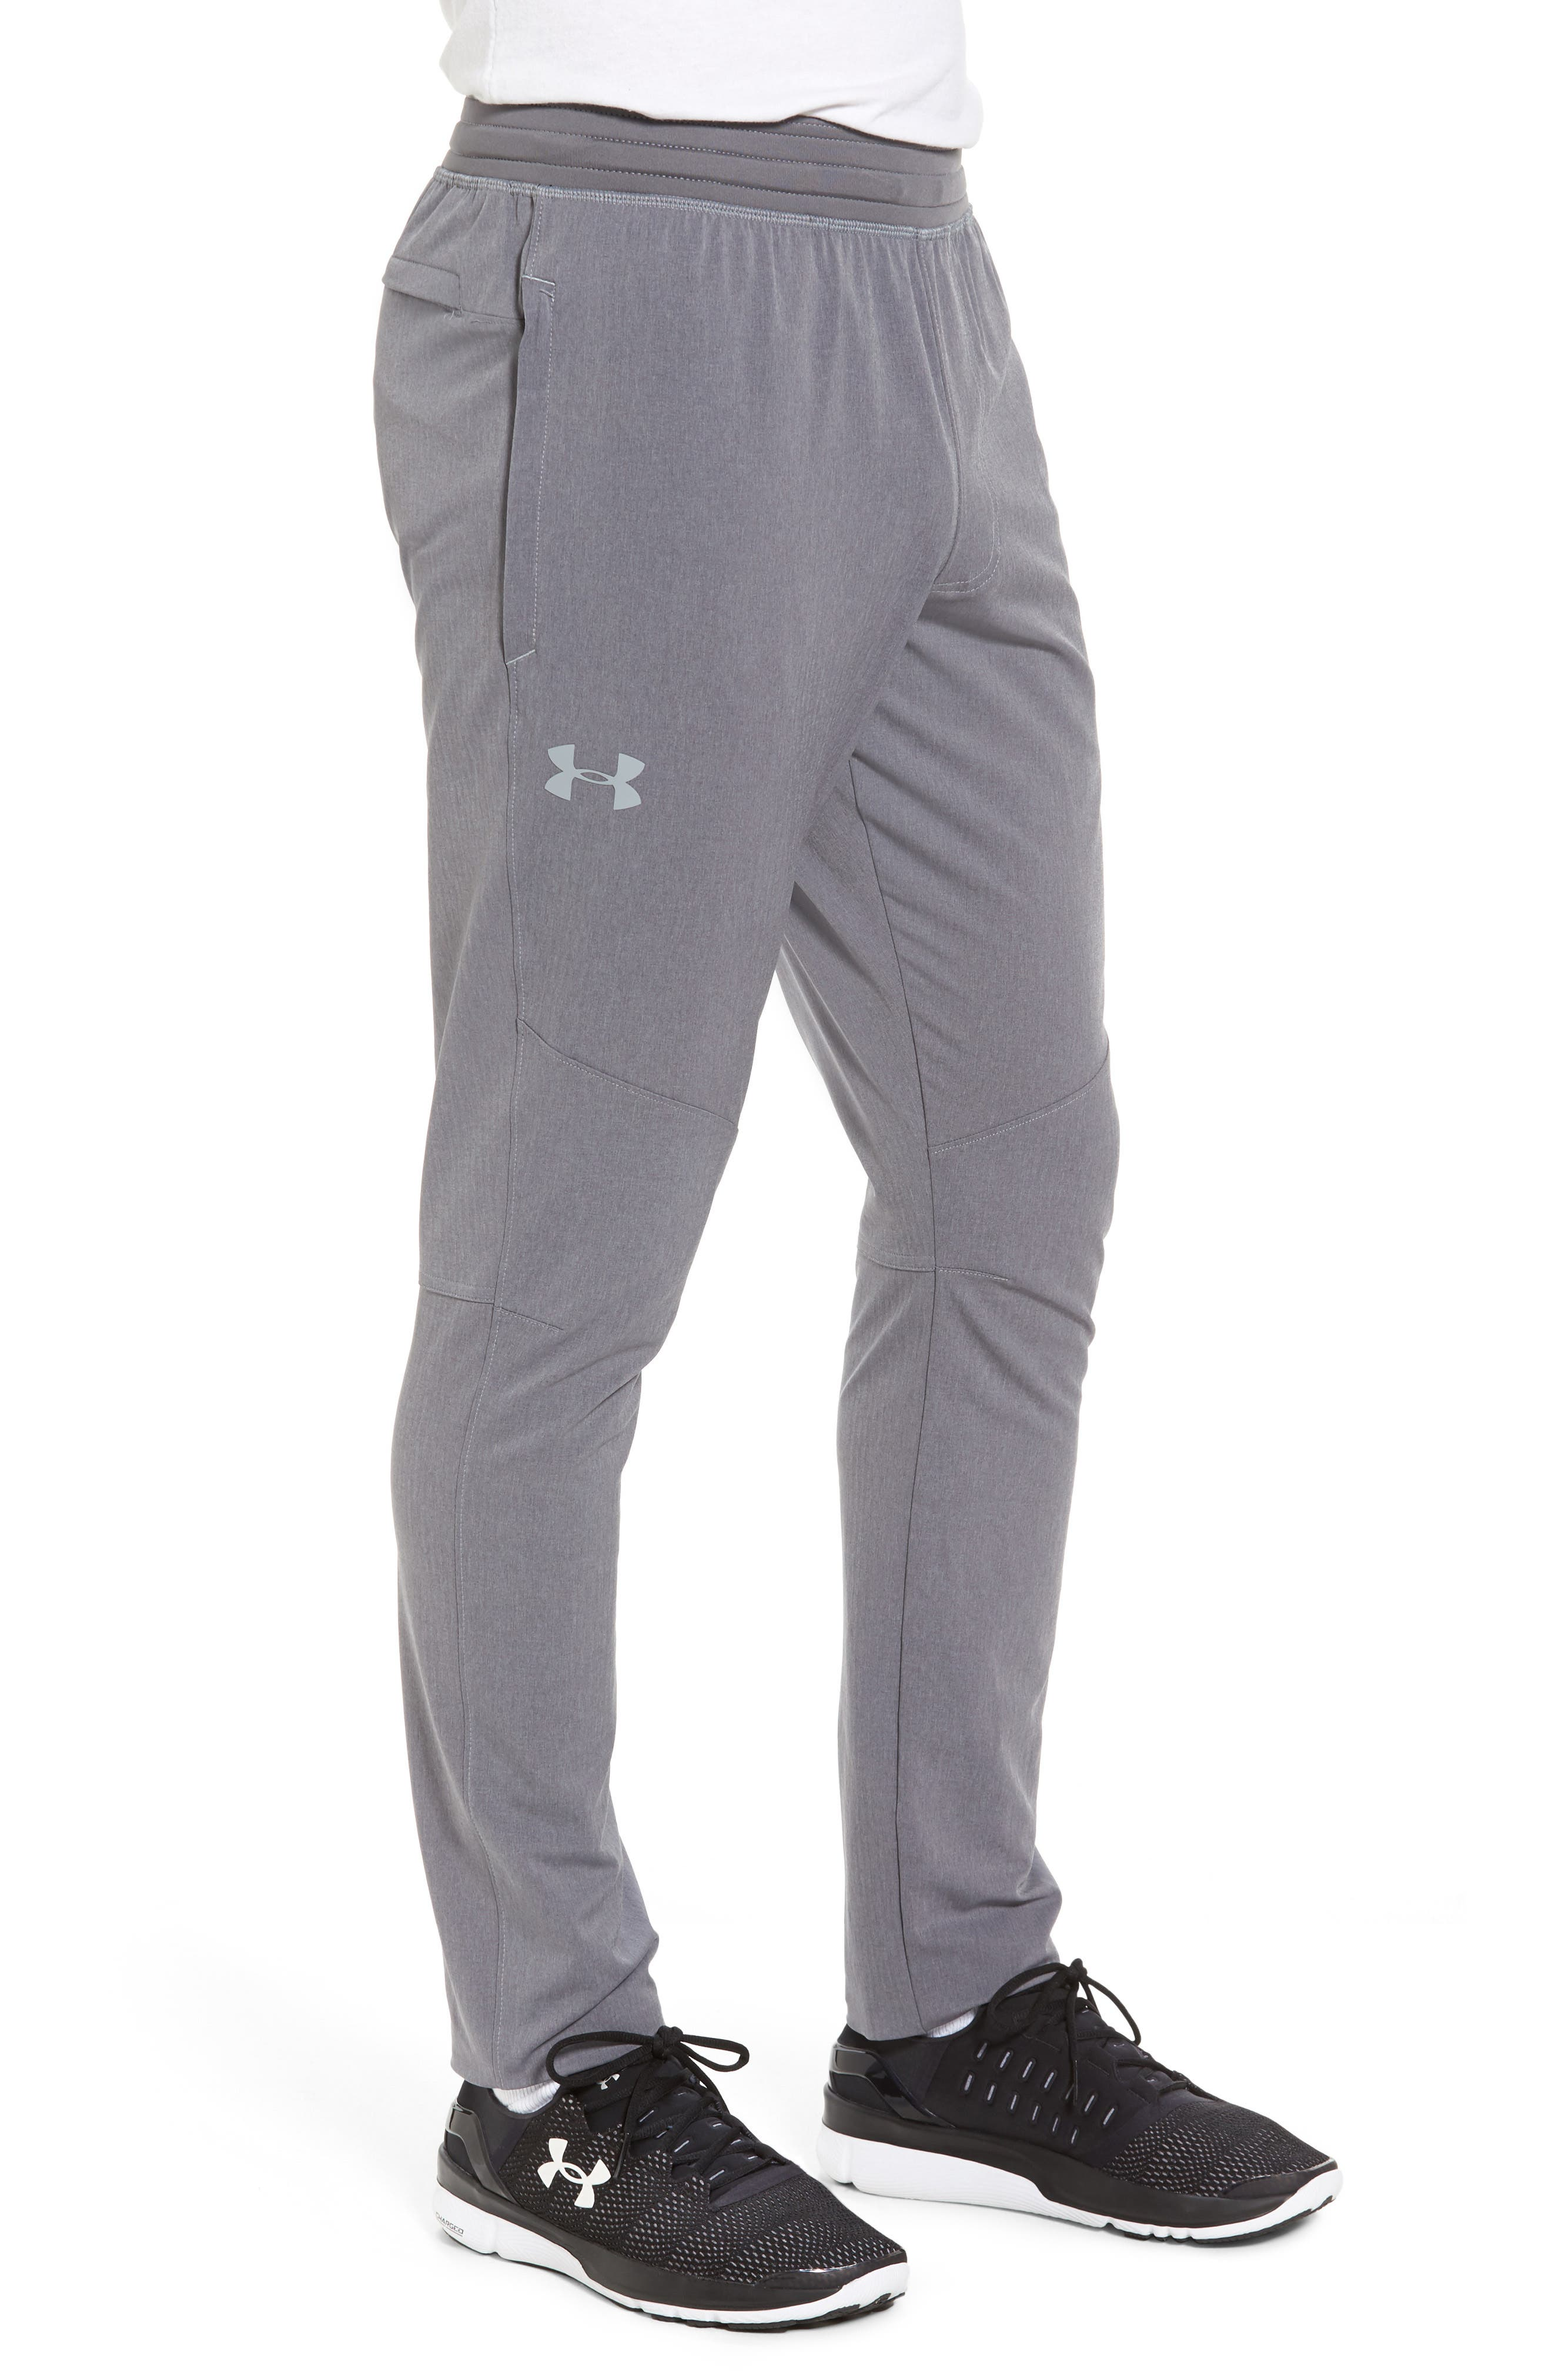 Fitted Woven Training Pants,                             Alternate thumbnail 3, color,                             Grey Heather / Black / Steel